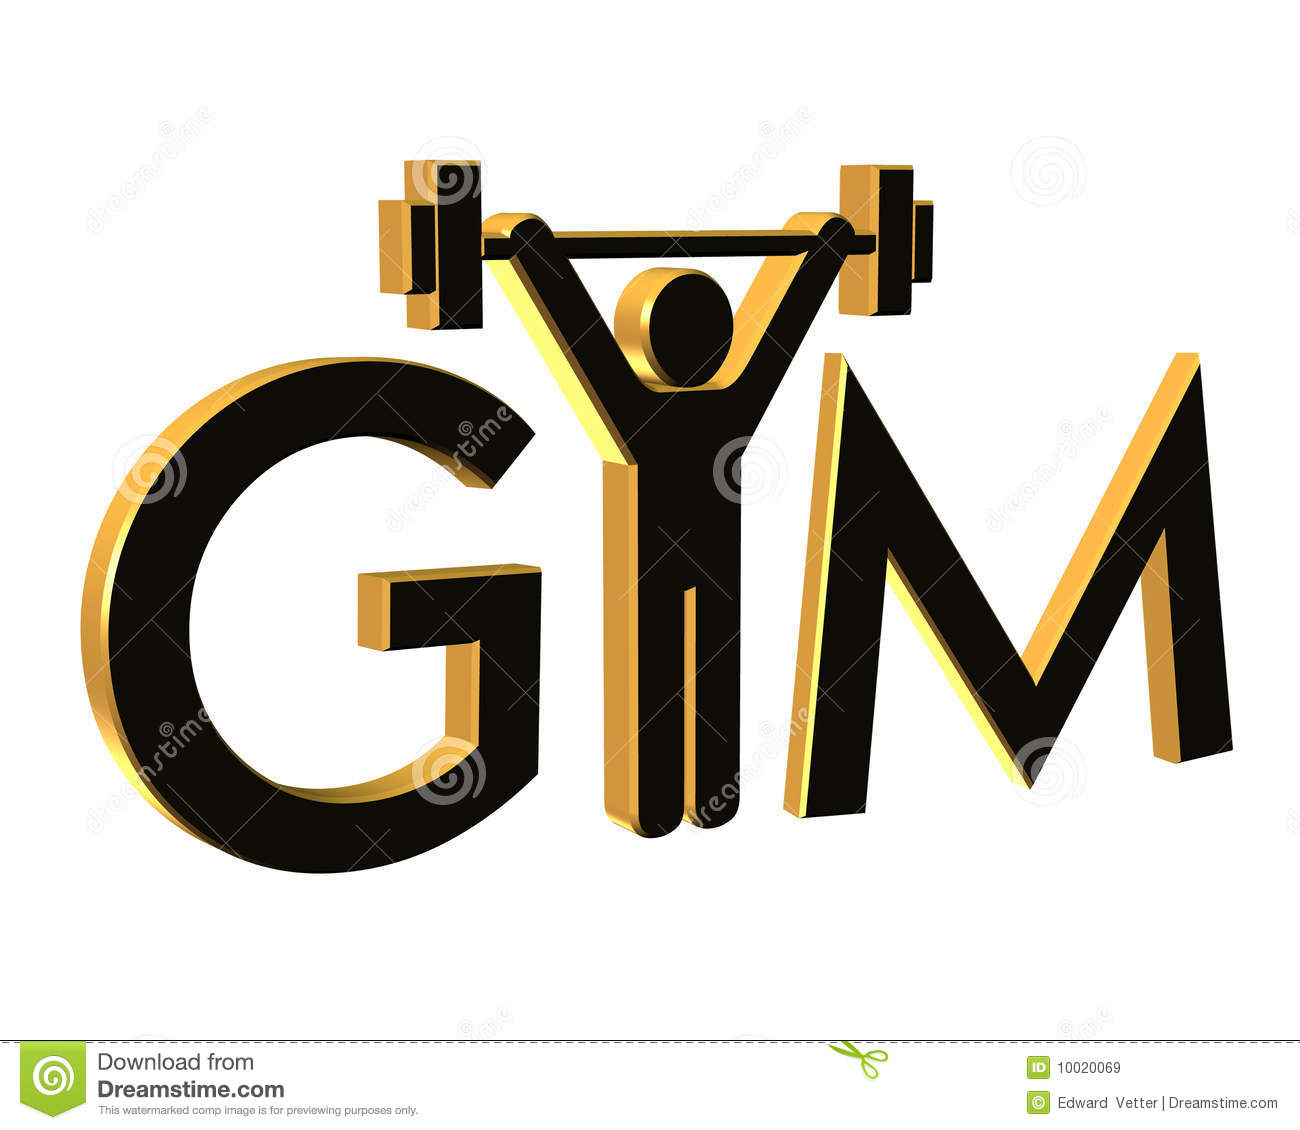 Gym Fitness Logo 3D Isolated Stock Illustration - Illustration of ... for Gym Logo Pictures  183qdu